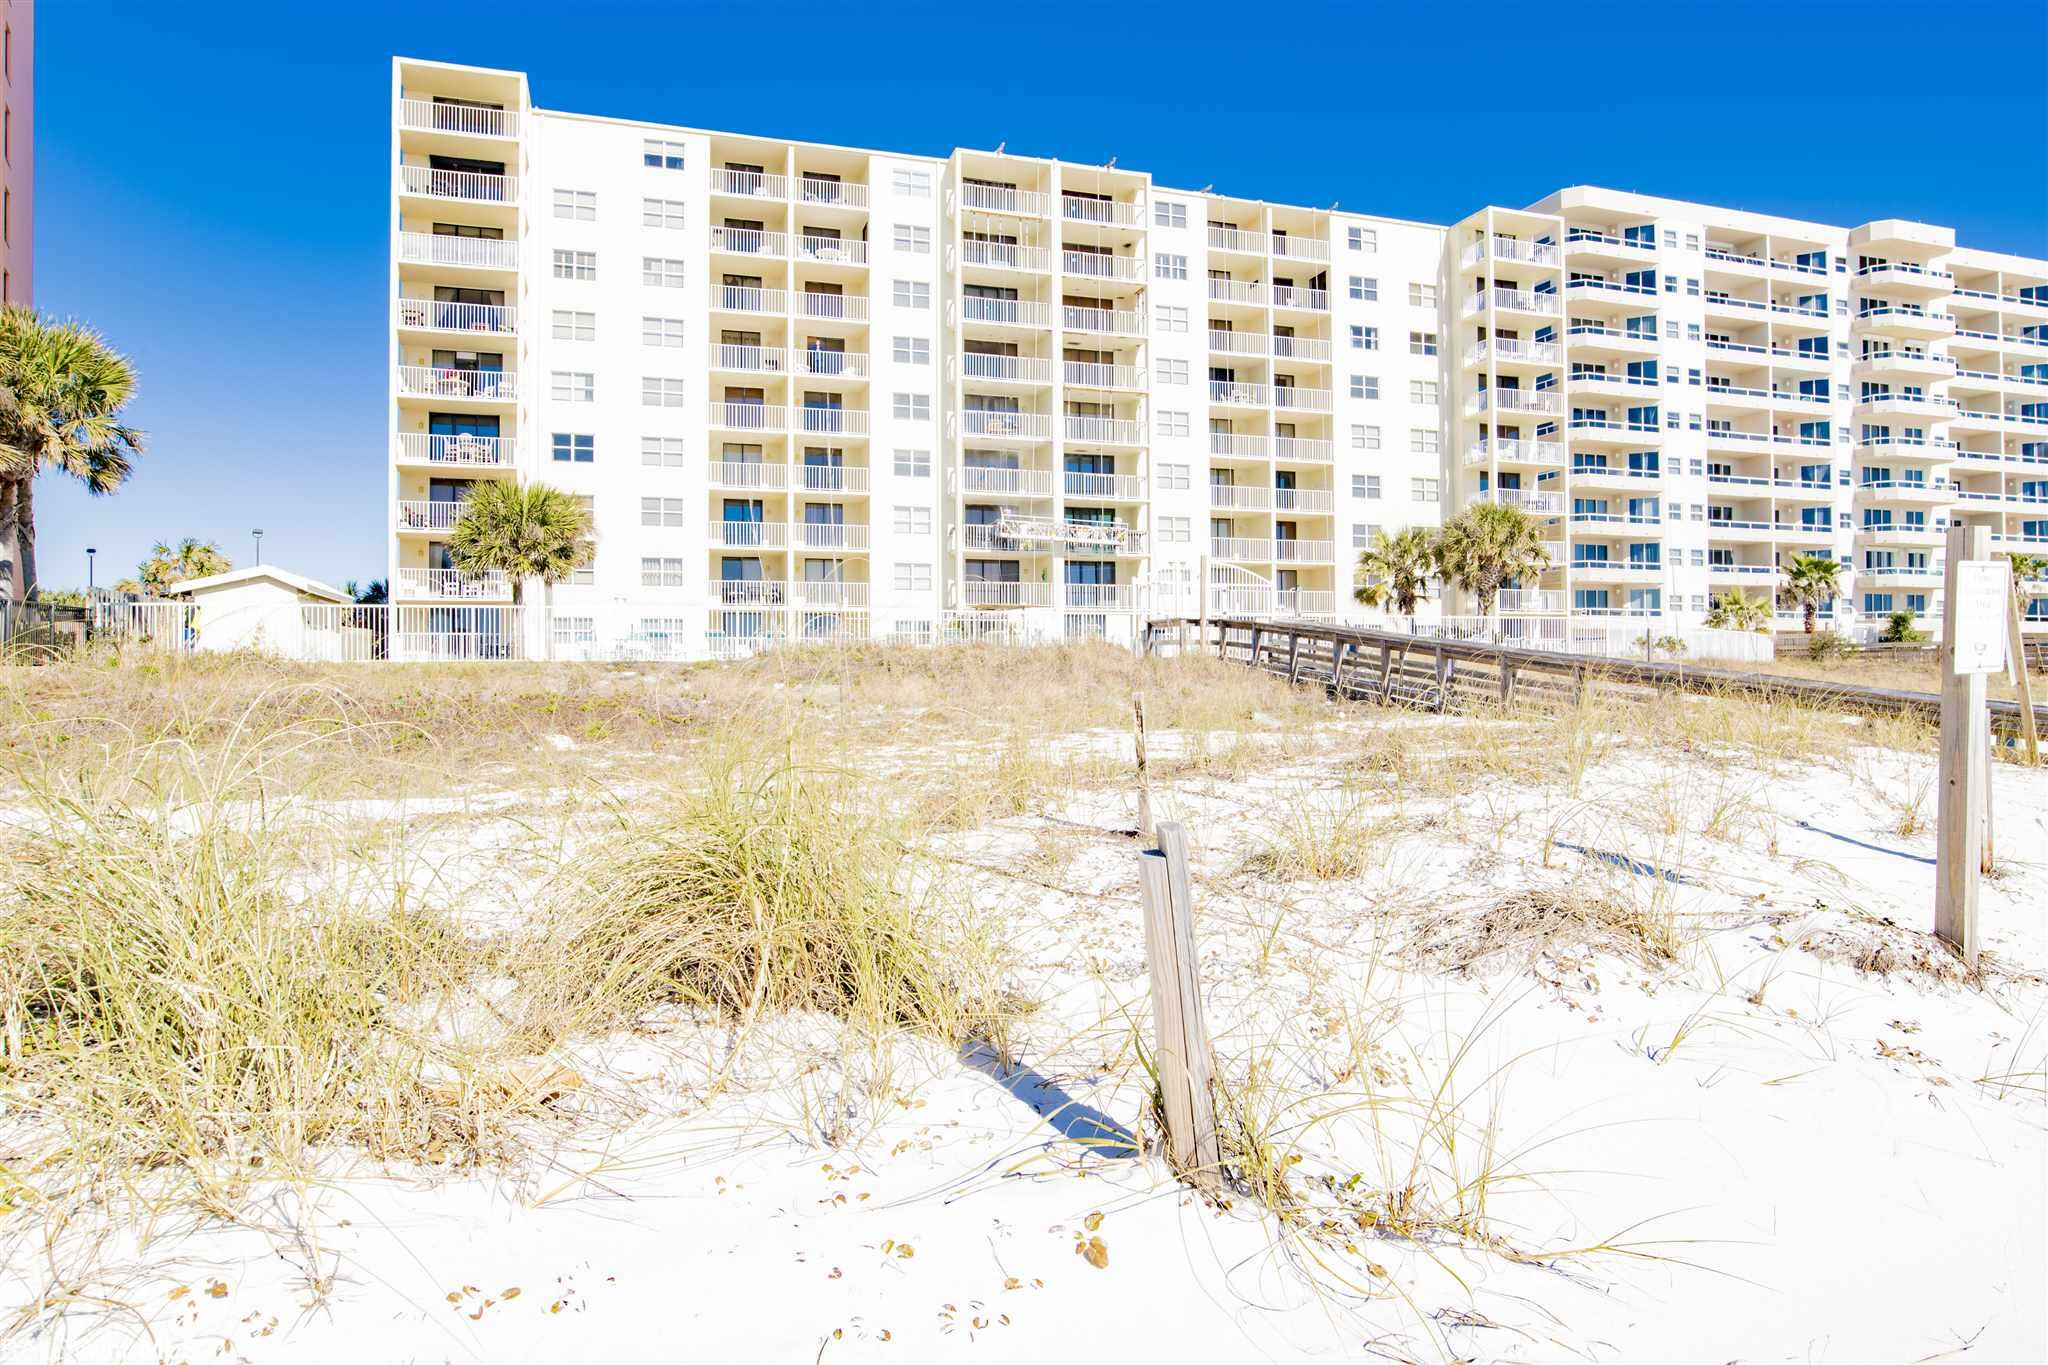 This unique 2-story townhome style condo is a must see!!  Located in the heart of Orange Beach walking distance to shopping and dining! Two living spaces downstairs. Three bedrooms & 3 baths with 1400sf there is plenty of room to entertain and spread out. Not to mention the rooftop terrace in addition to the TWO beach front balconies, this is one of a kind. Kitchen & baths remodeled in 2020, new fridge in 2020, new water heater in 2019 and HVAC replaced in 2016 to name a few.  Beautiful granite counters with stainless steel appliances and tile floors throughout.  Tiled shower with sunken tub for relaxing after a fun day on the beach!!  This is one you will not want your clients to miss!!!